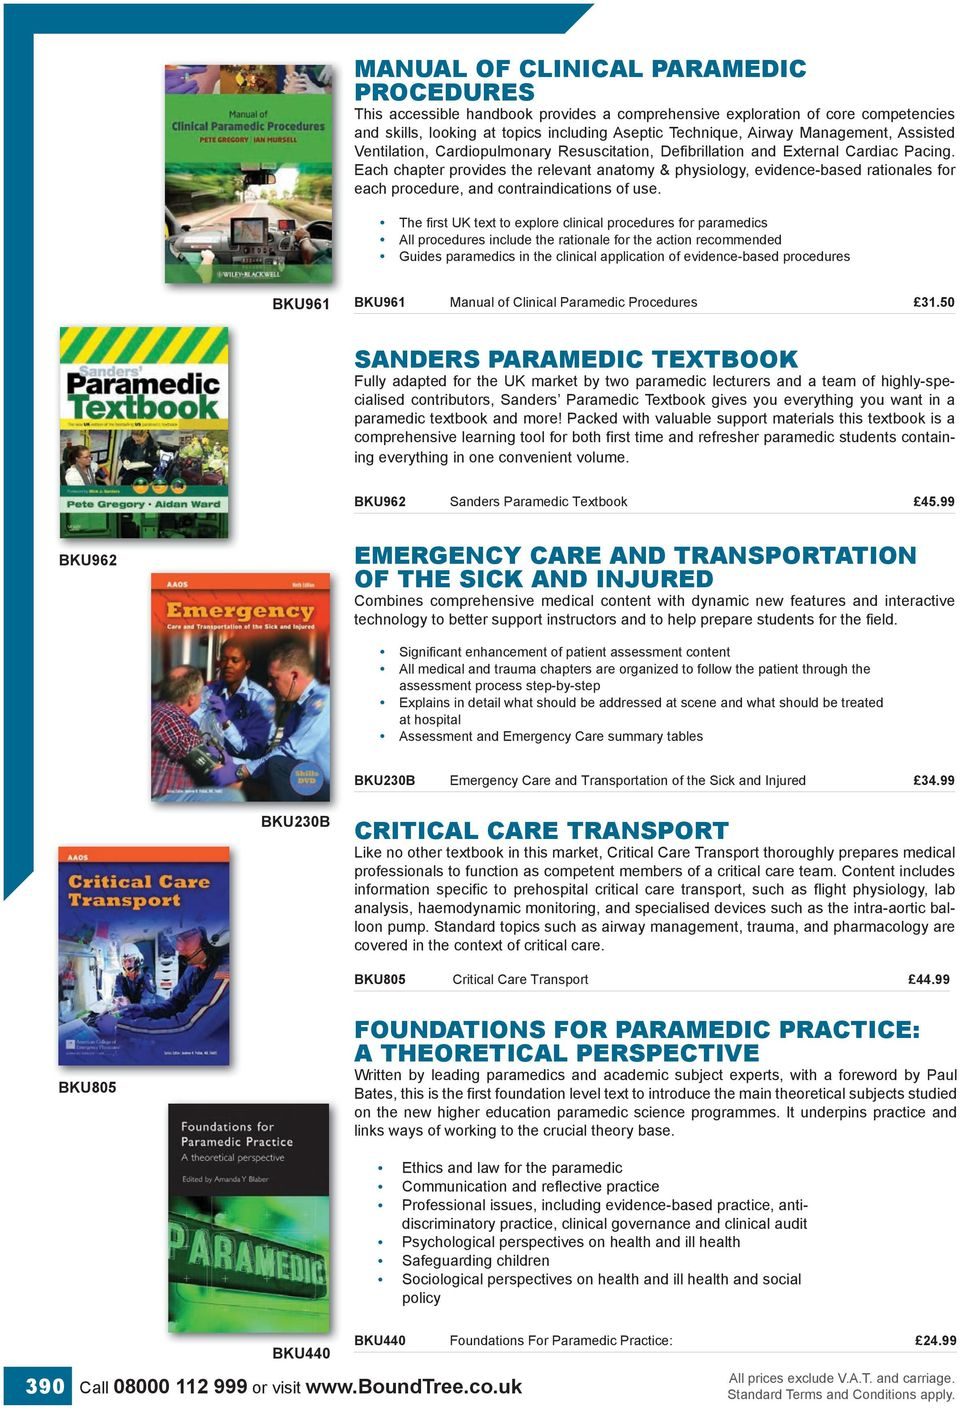 Each chapter provides the relevant anatomy & physiology, evidence-based  rationales for each procedure